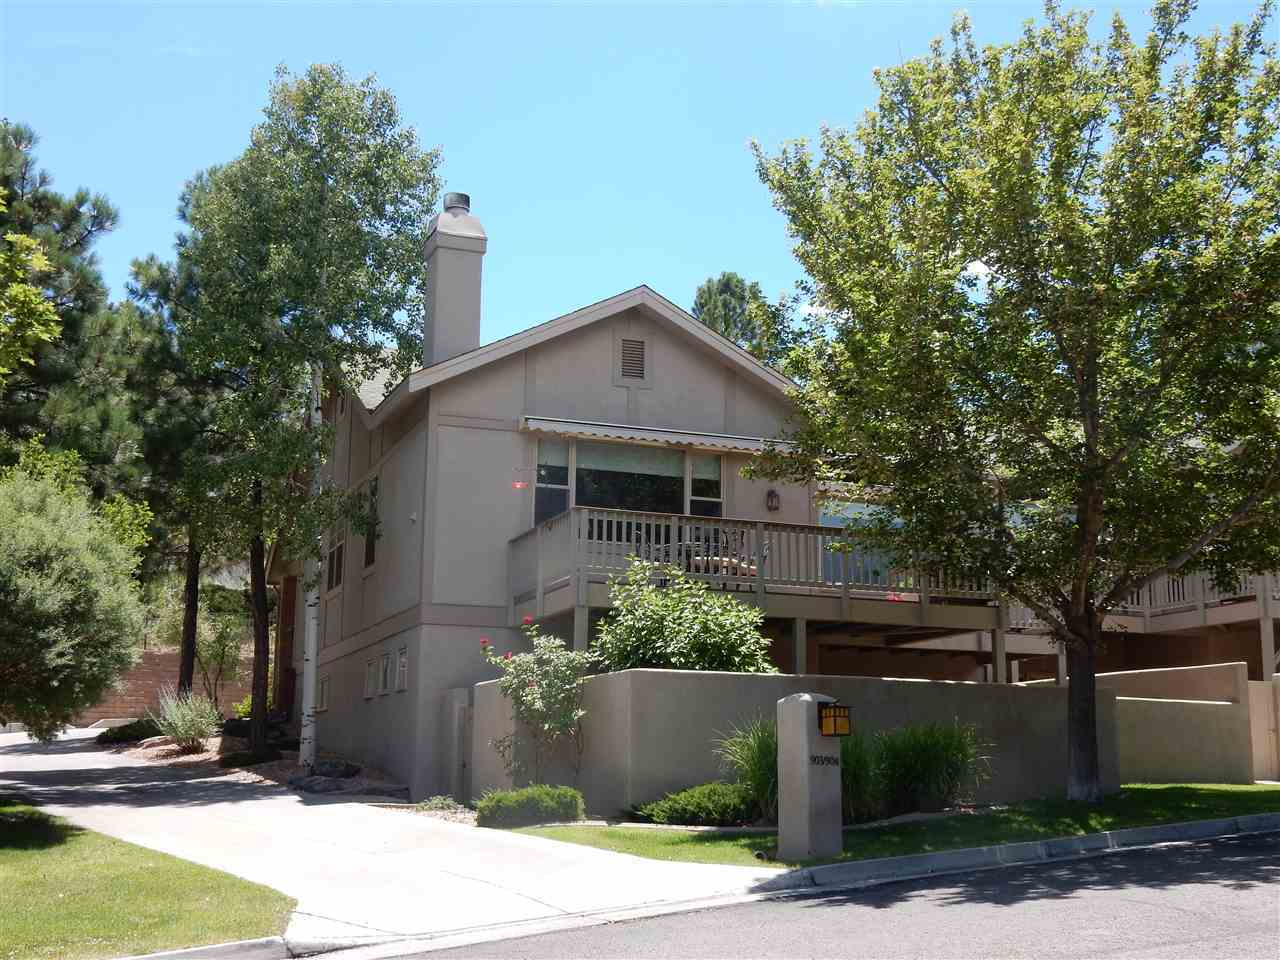 904 circle dr los alamos nm 87544 mls 201703505 redfin jeuxipadfo Image collections